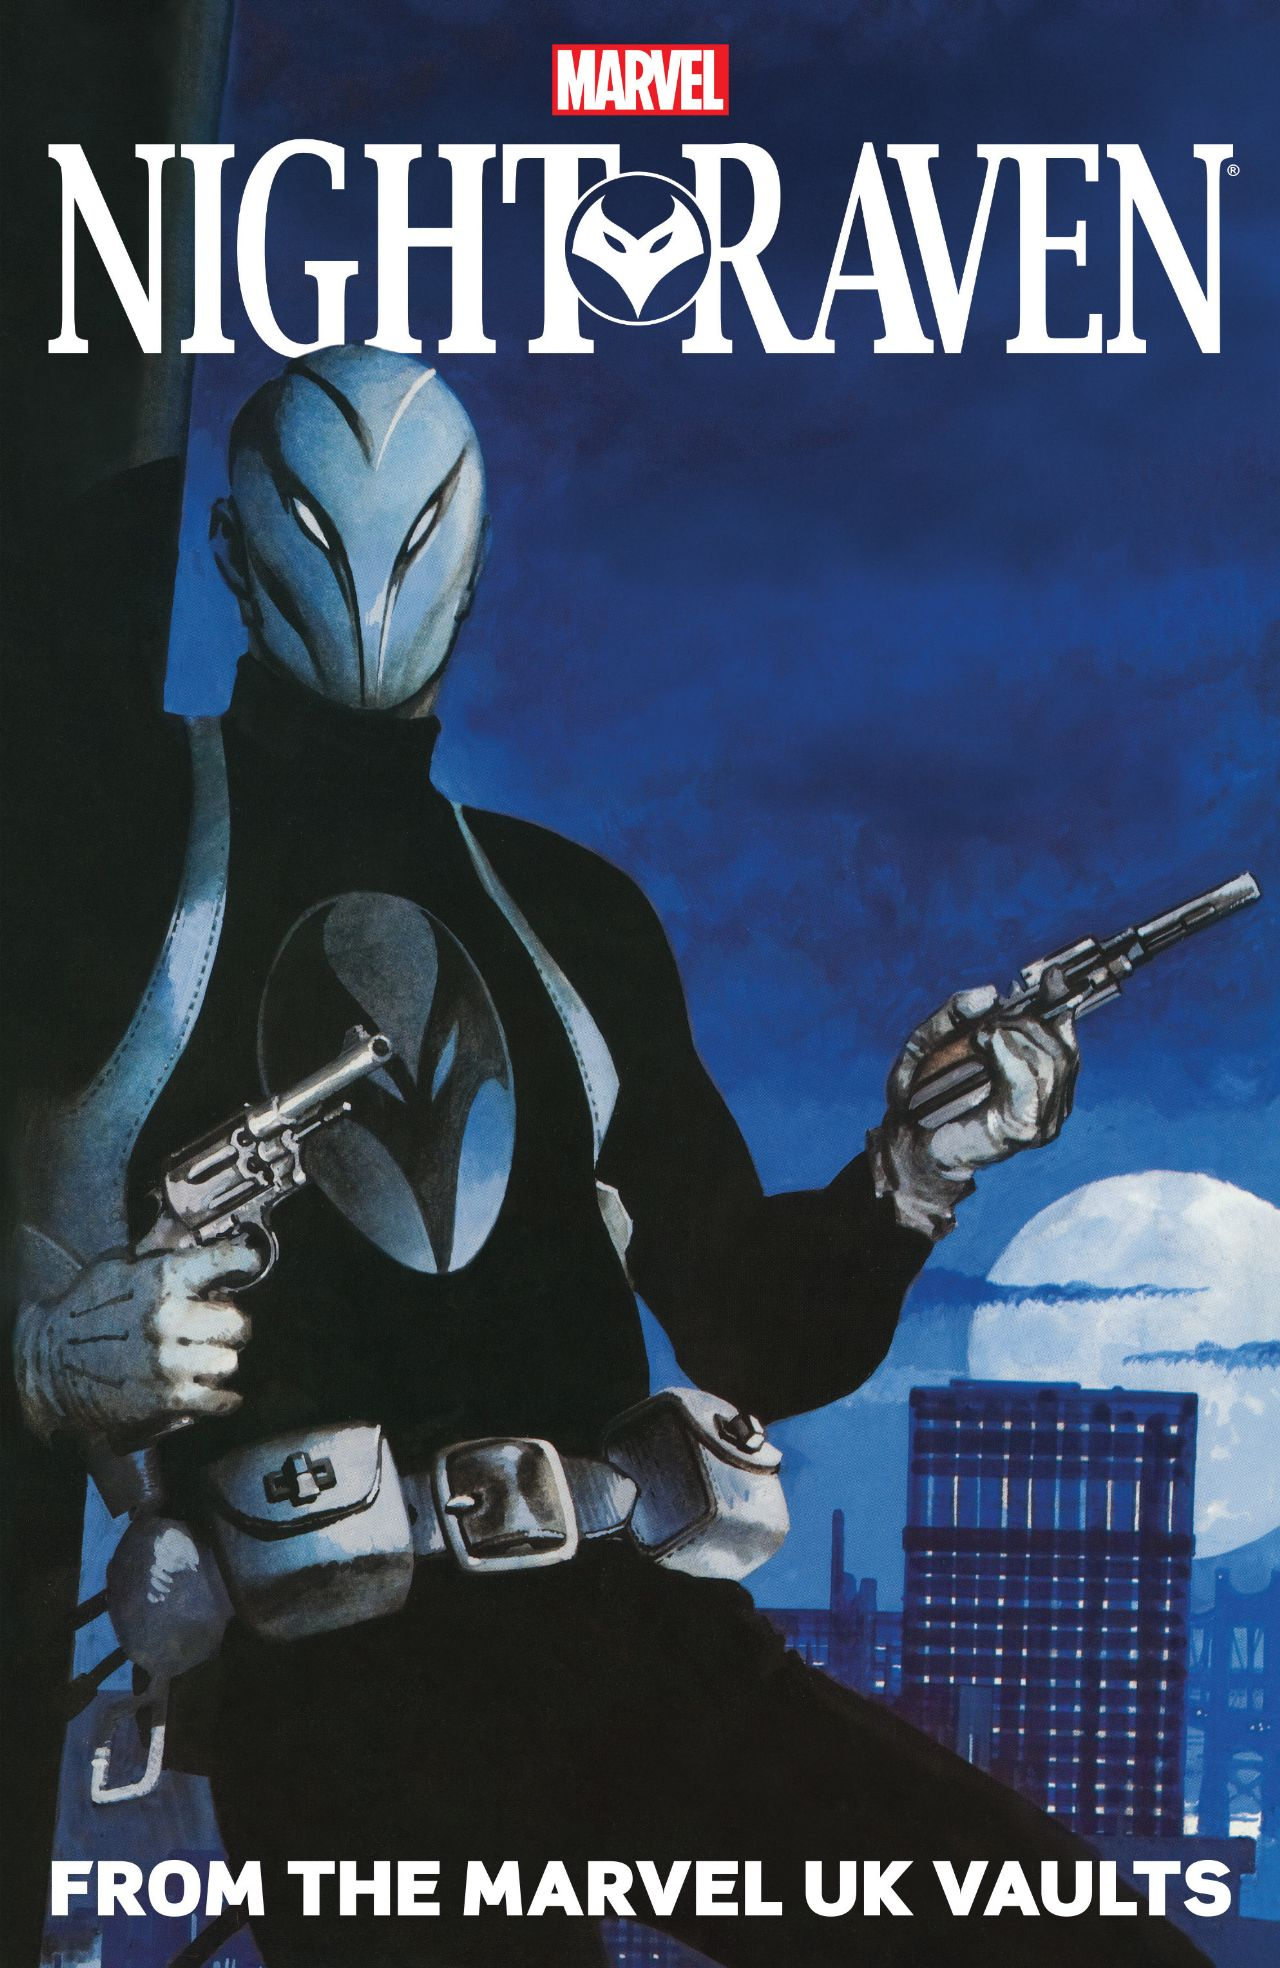 Night Raven: From the Marvel UK Vaults Review